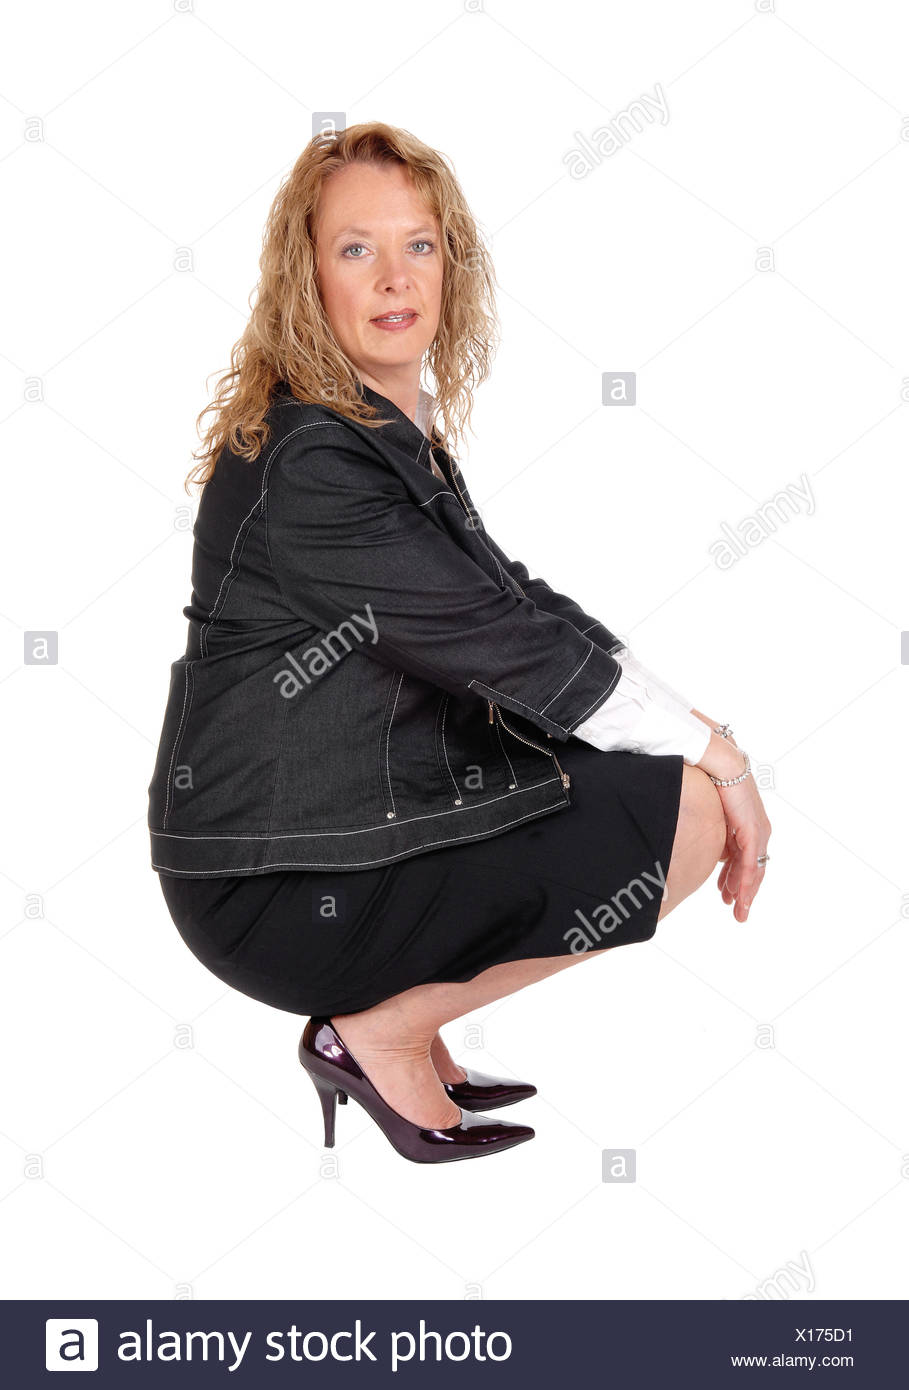 Lovely woman crouching on floor. - Stock Image